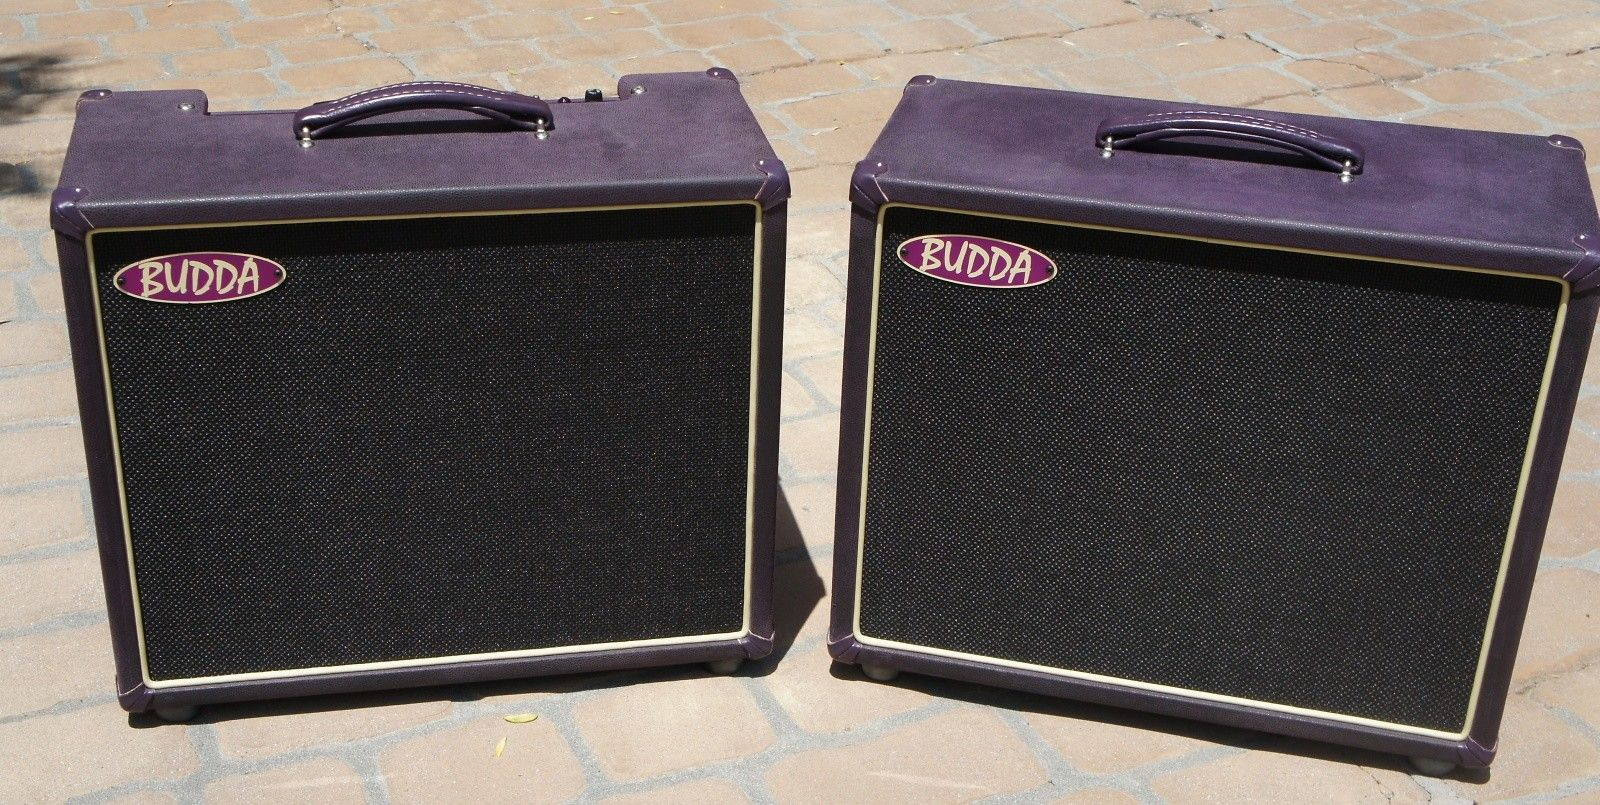 Budda Twinmaster 10th Anniversary 1x12 combo amp, road case, 1x12 extension speaker cab, purple | Reverb